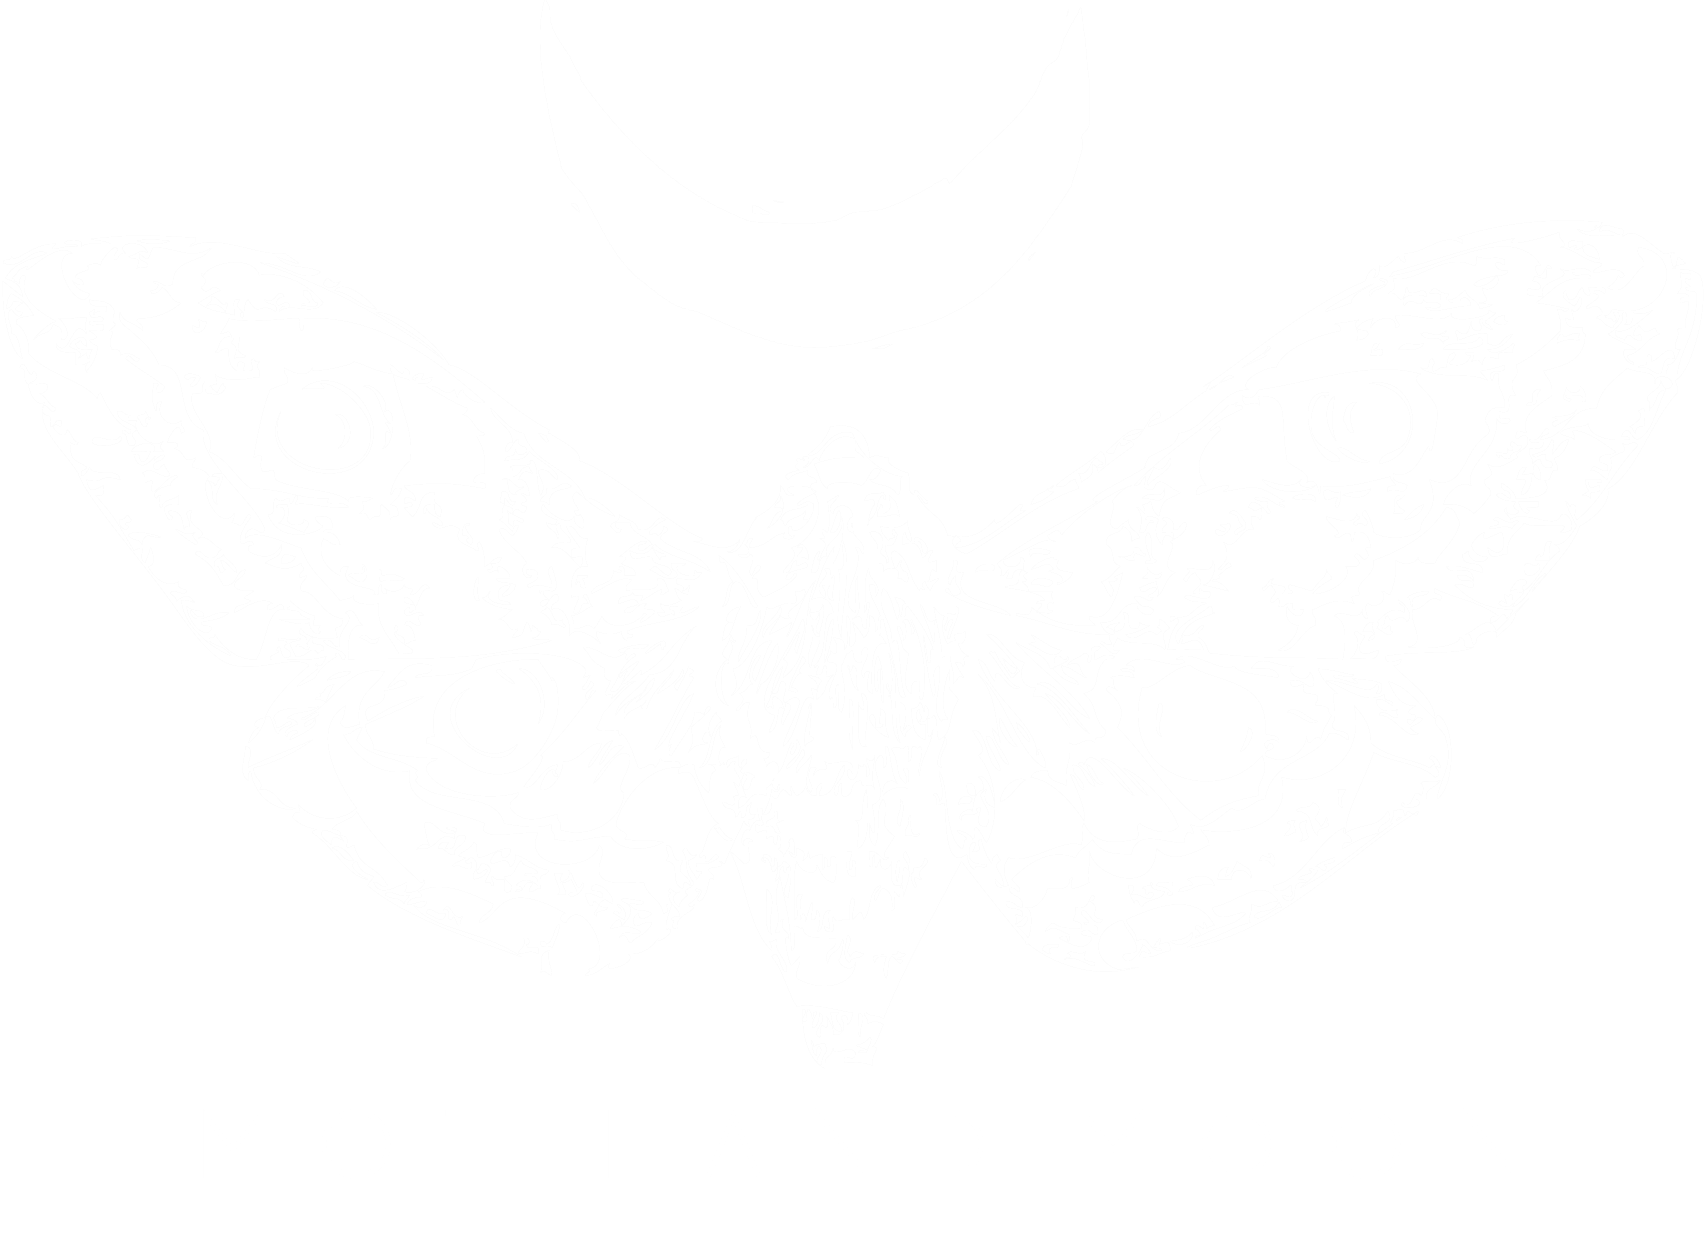 moth and moon